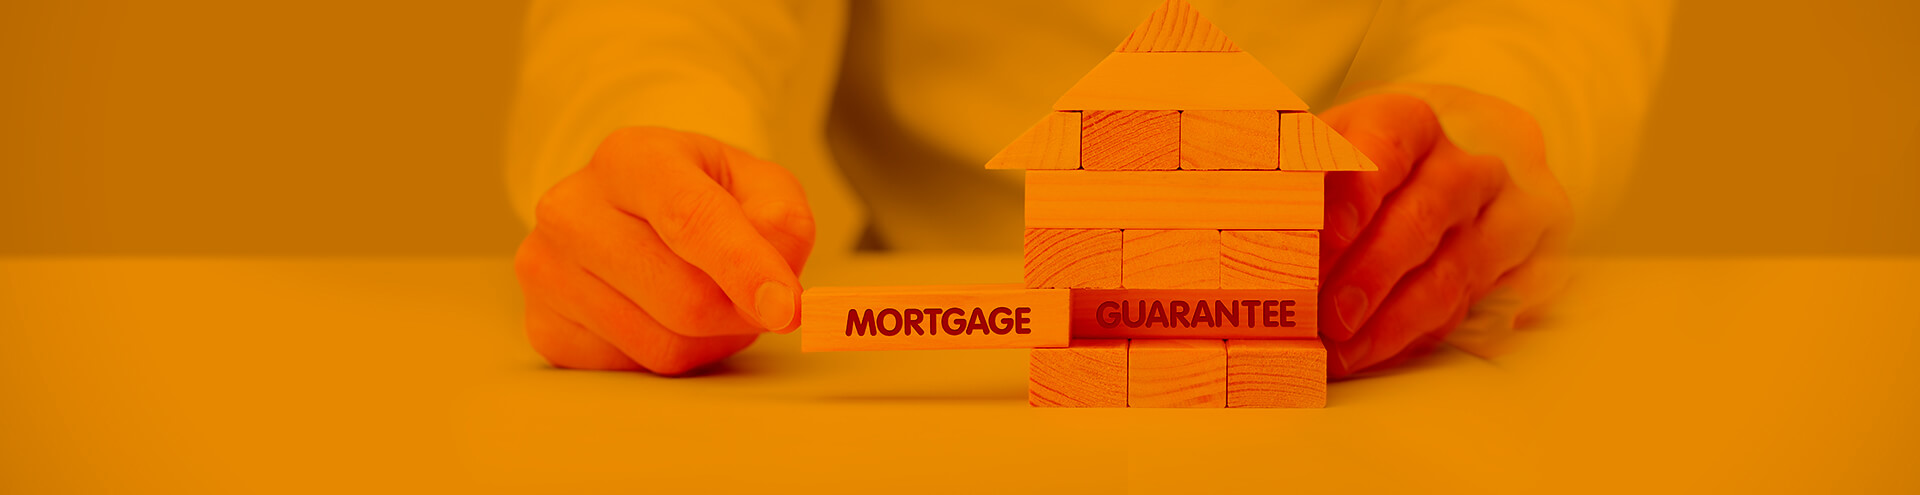 IMGC Mortgage Guarantee